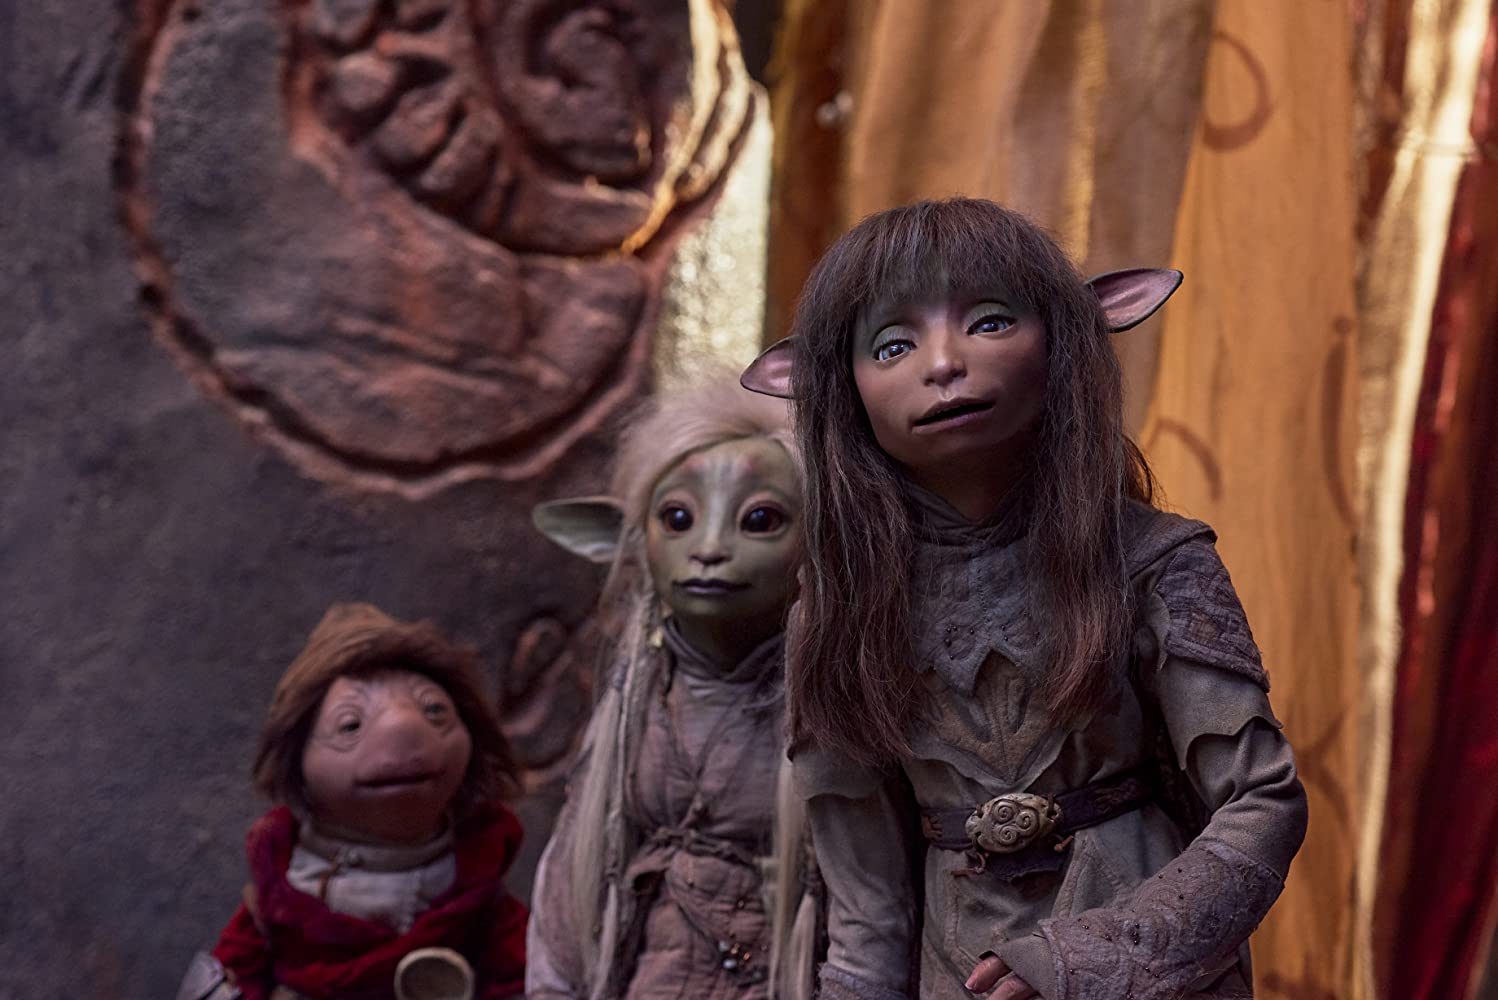 Victor Yerrid, Nathalie Emmanuel, and Taron Egerton in The Dark Crystal: Age of Resistance (2019)